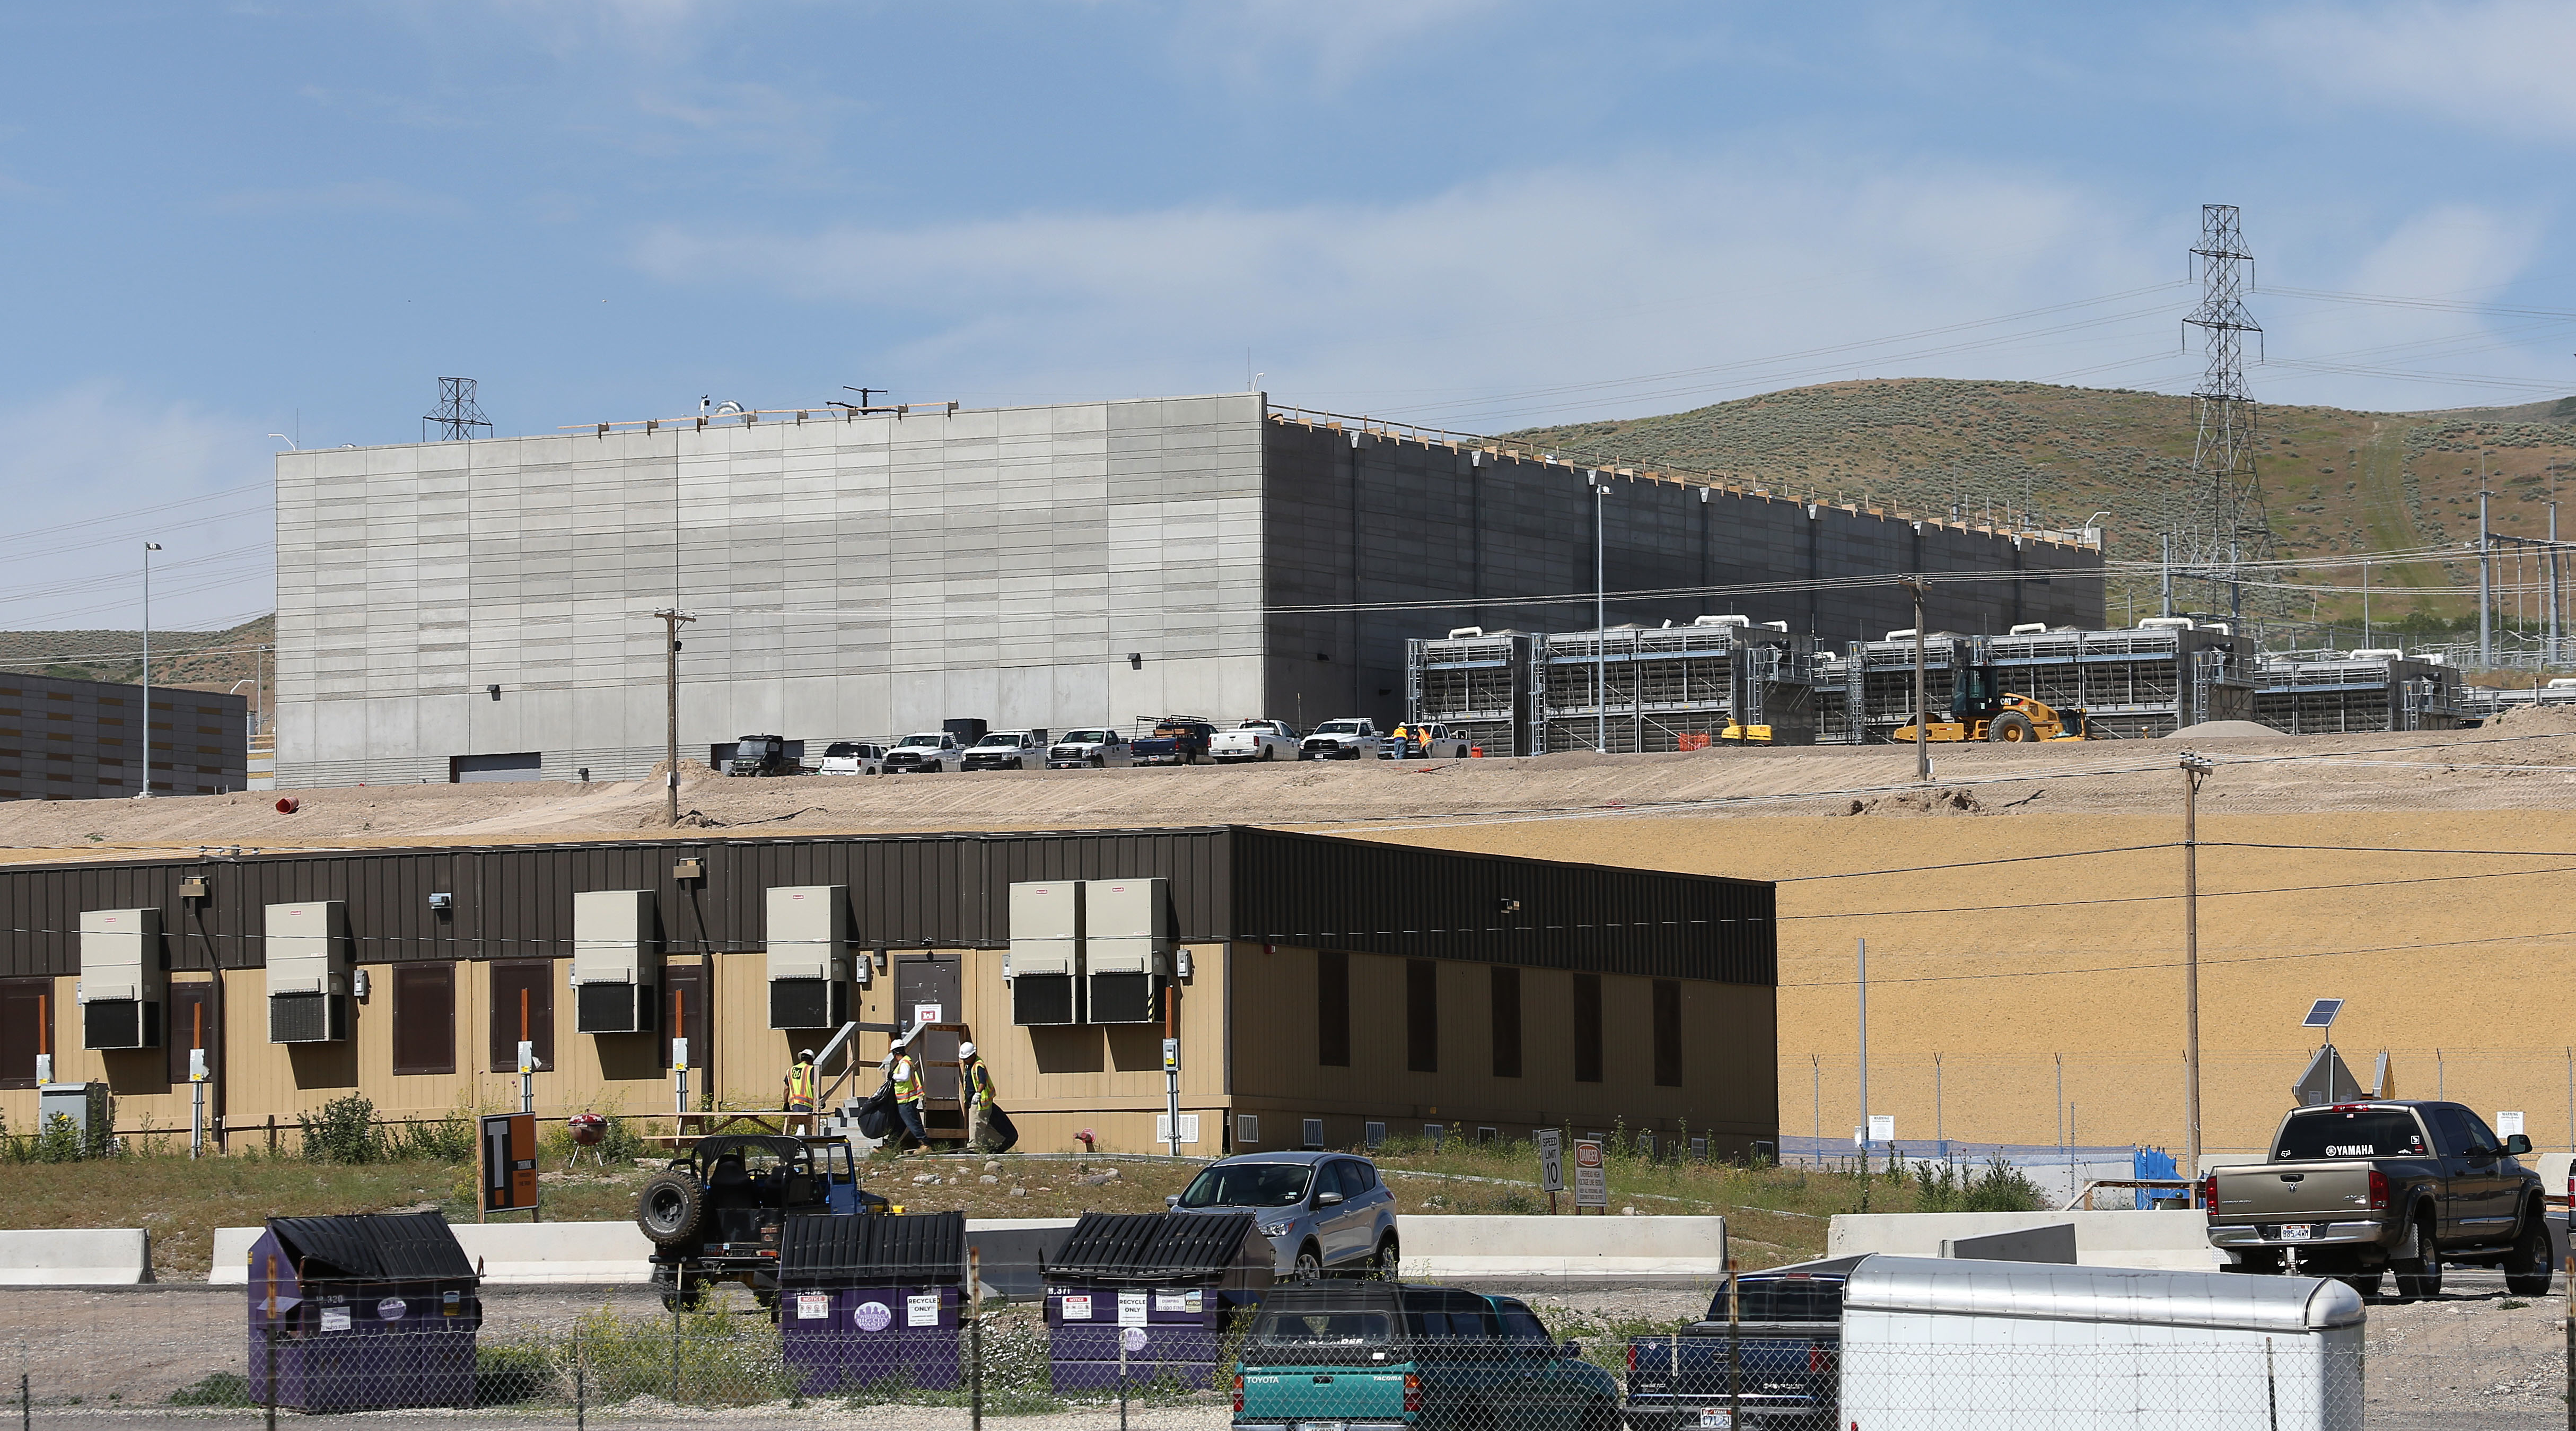 Construction trailers in front of the new National Security Agency's data center being built in Bluffdale, Utah. It will be the agency's largest data center, and is scheduled to become operational this fall.